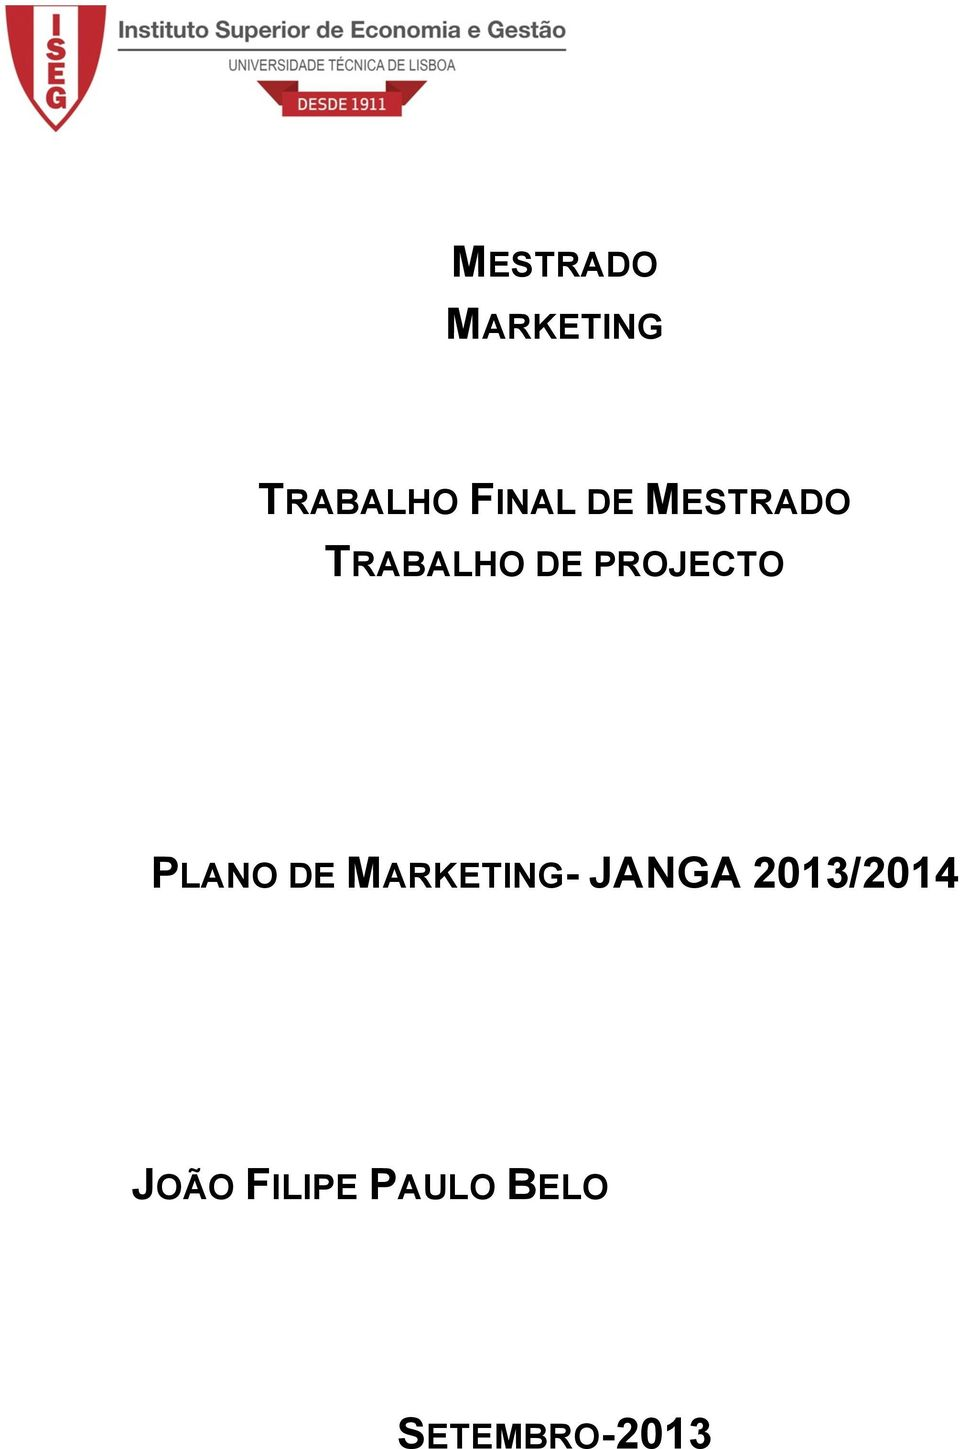 PLANO DE MARKETING- JANGA